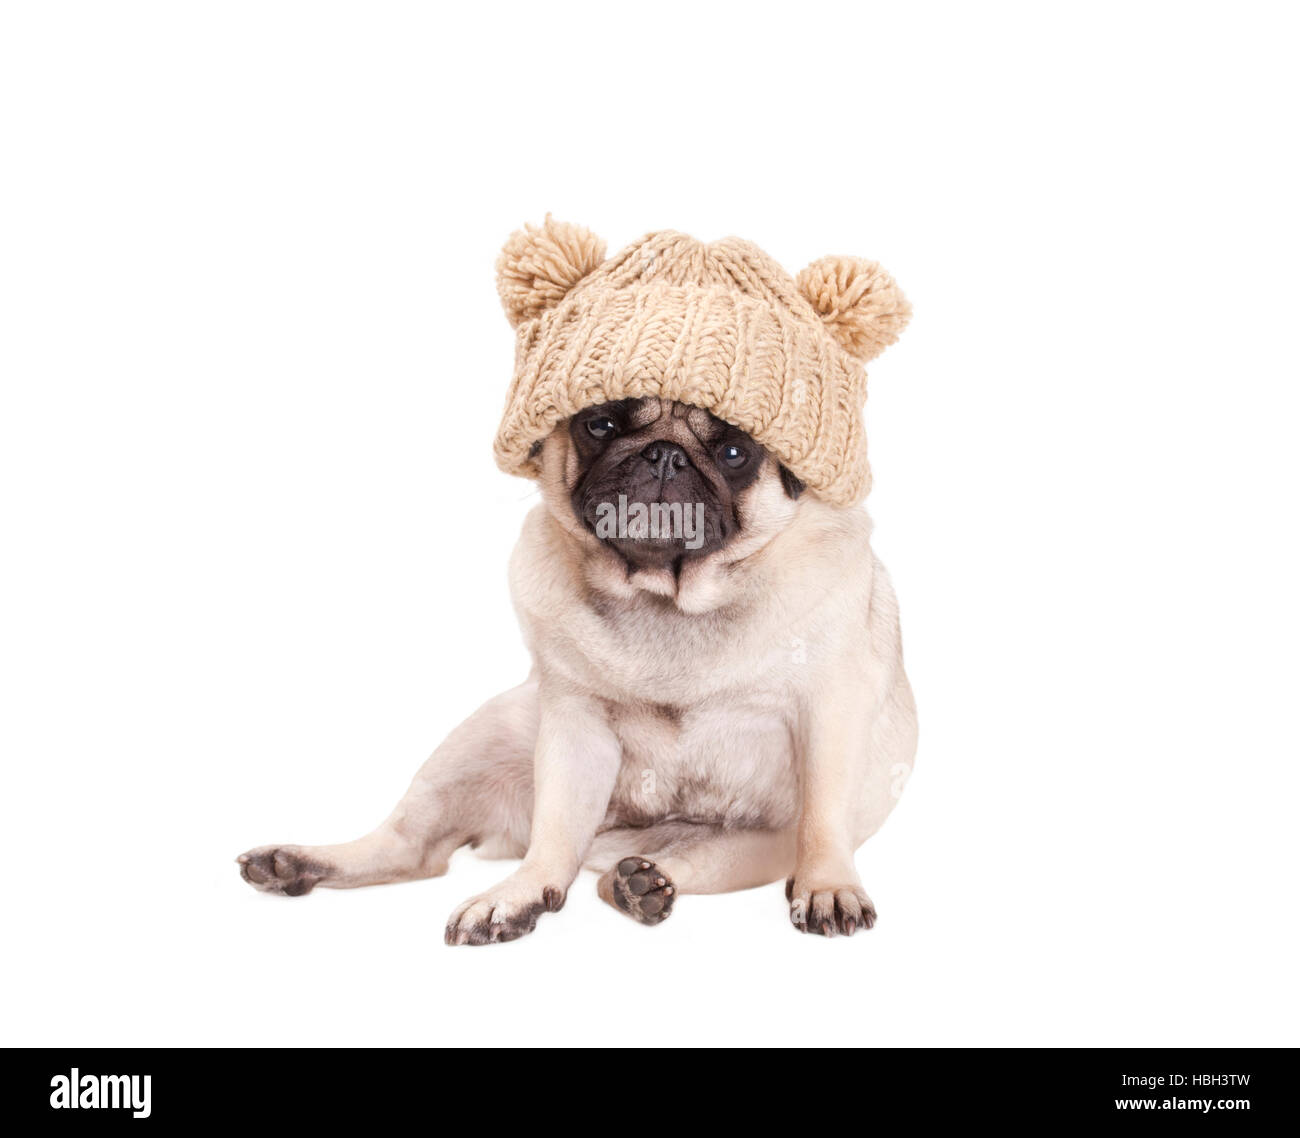 sweet pug puppy dog sitting down and wearing a knitted hat with pompoms, isolated on white background - Stock Image